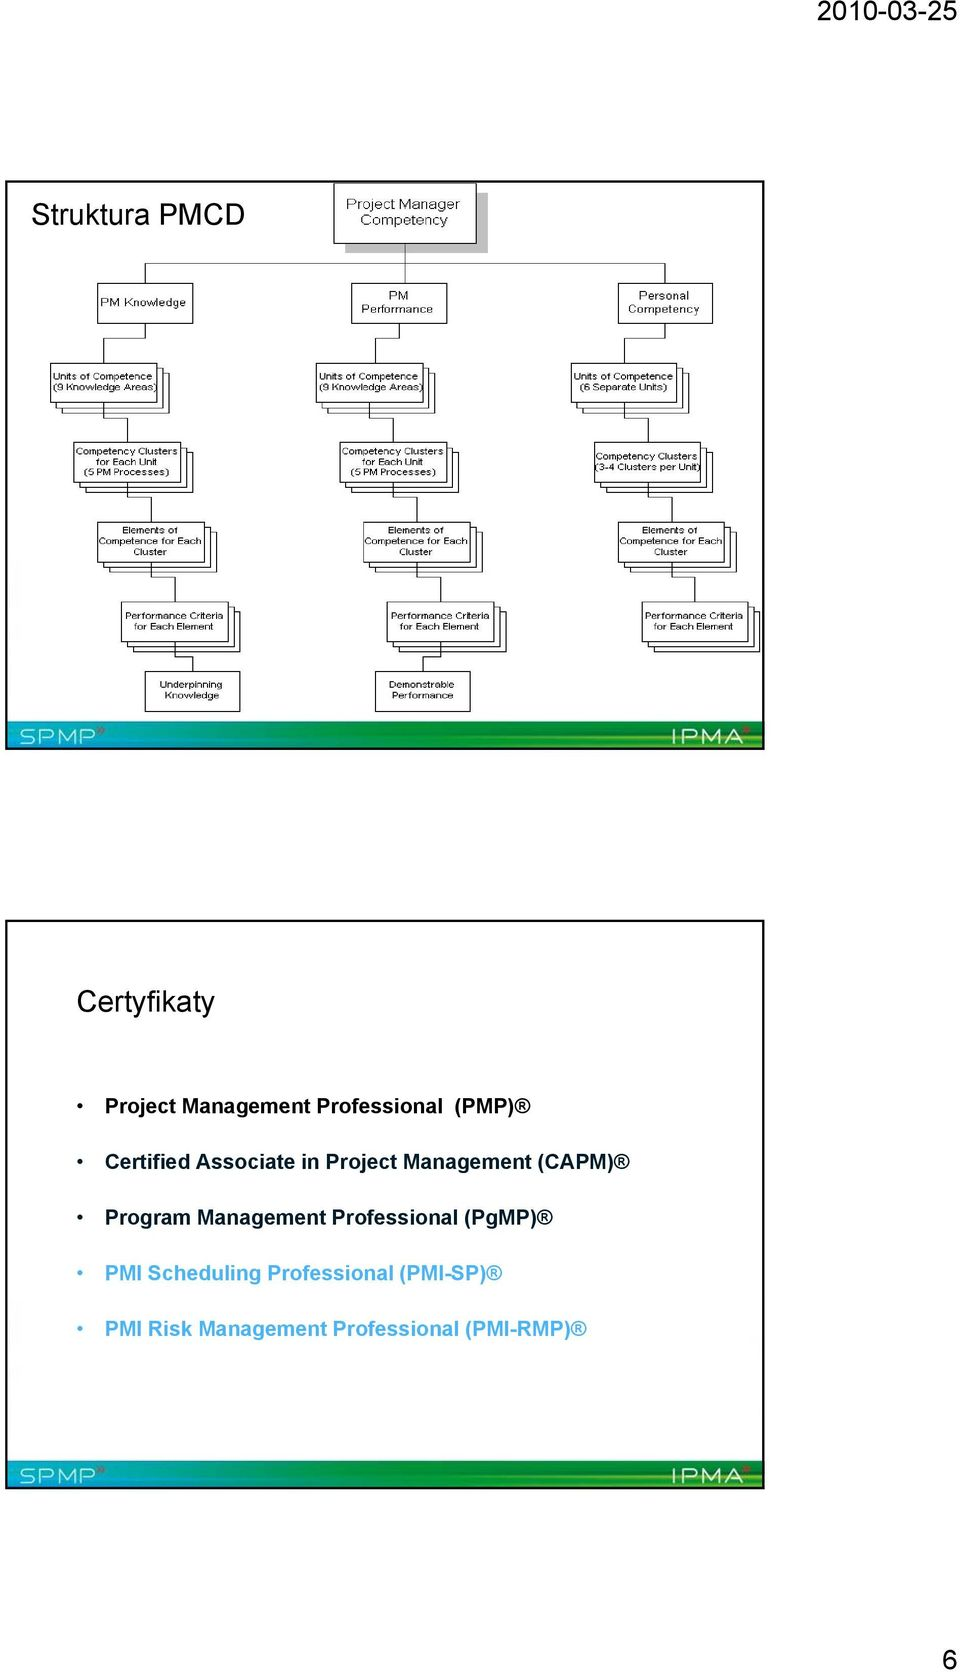 Program Management Professional (PgMP) PMI Scheduling